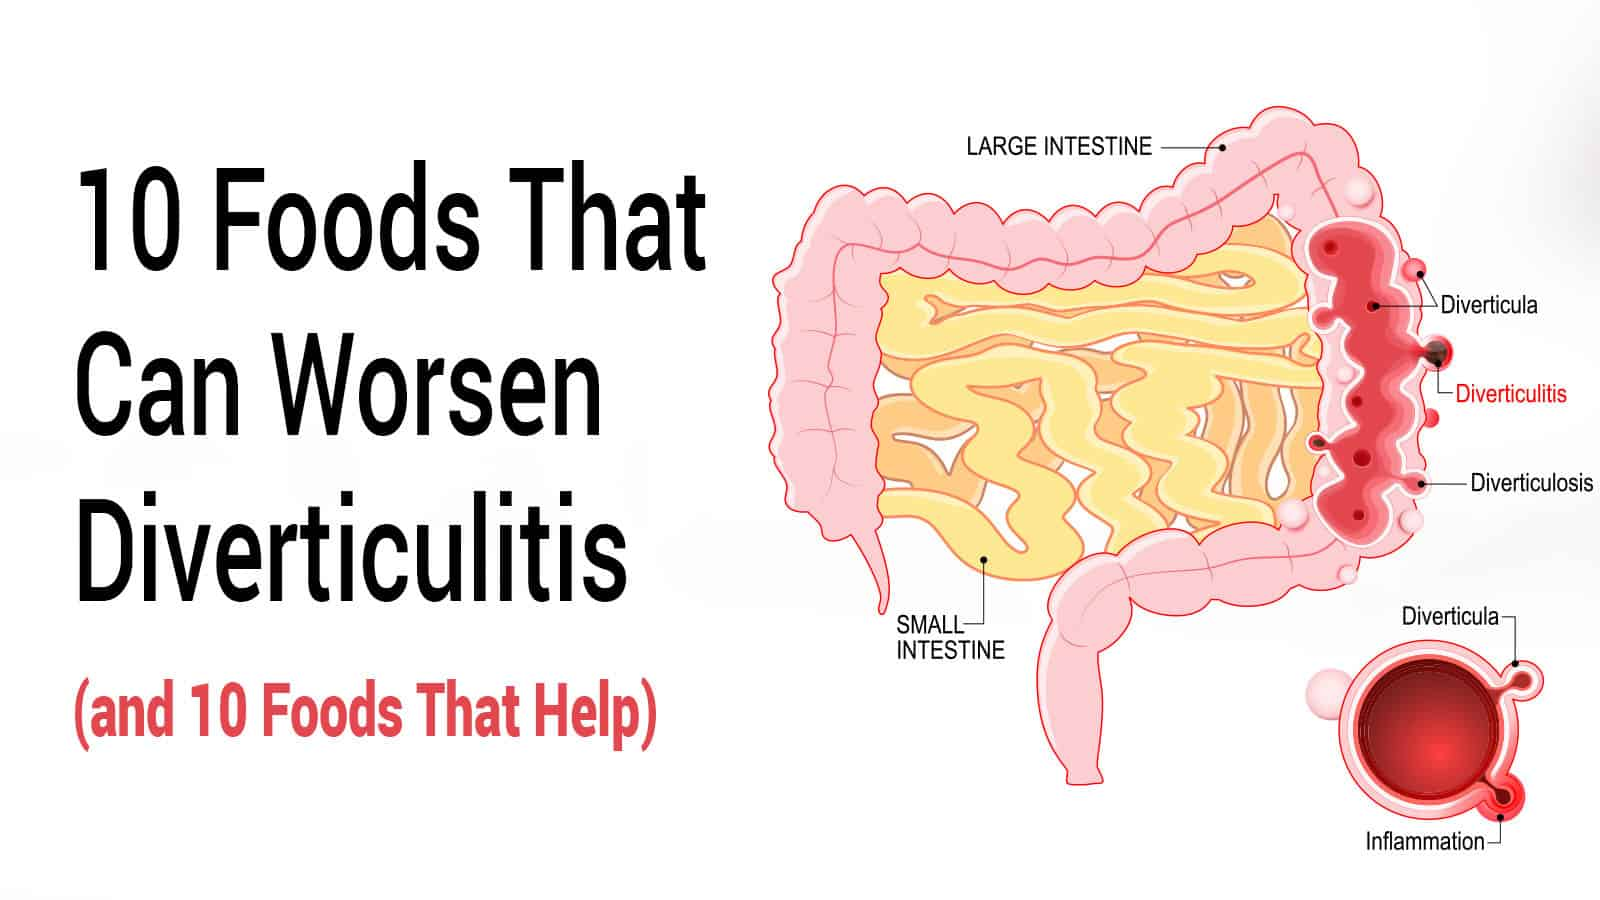 10 Foods That Can Worsen Diverticulitis (and 10 Foods That Help)